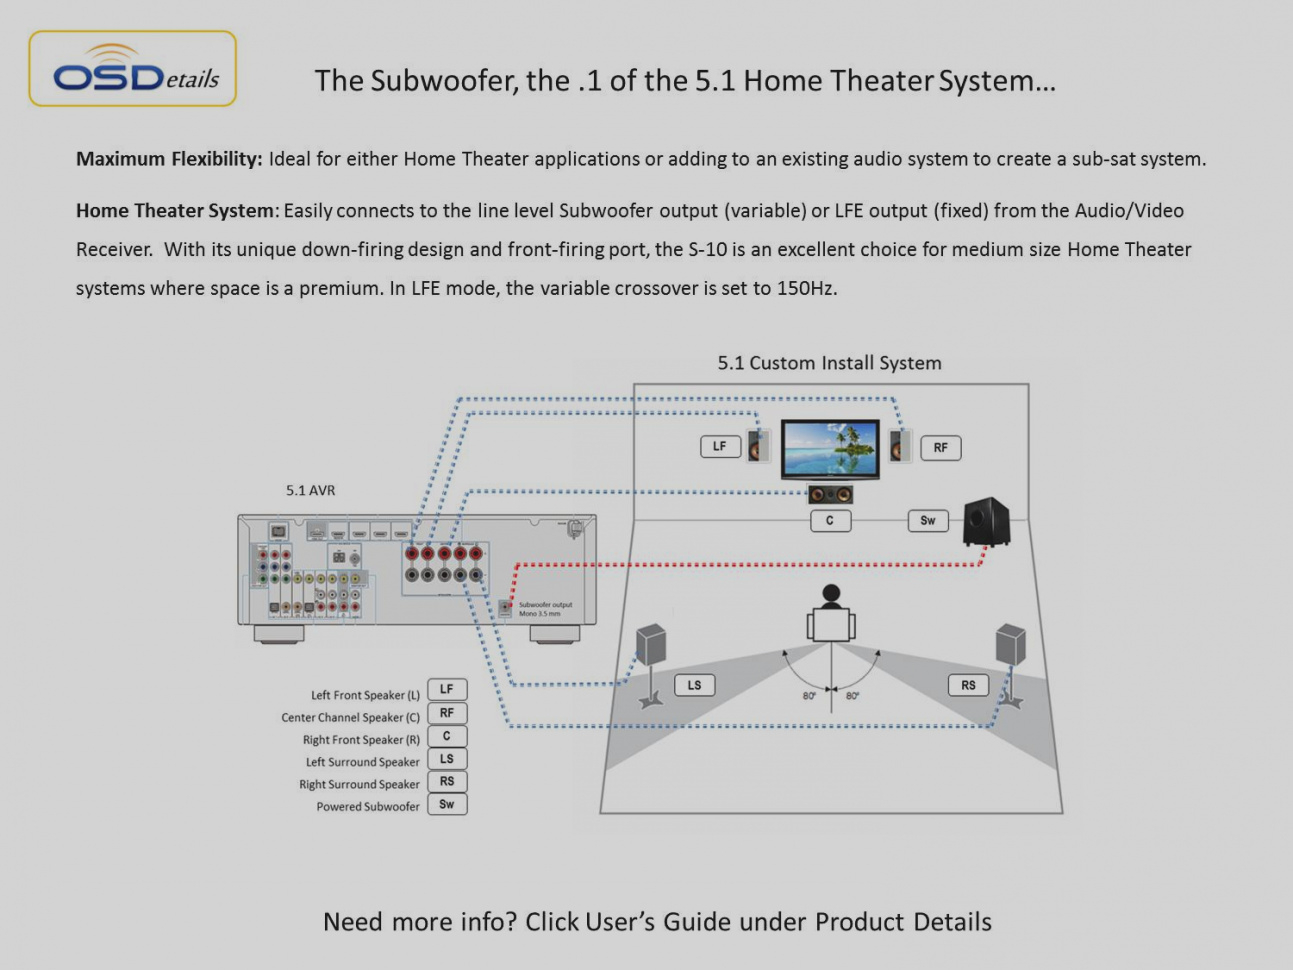 home theater subwoofer wiring diagram Download-Full Size of effective Strategies For Subwoofer Wiring That You Can Use Starting Today Wonderful 4-s